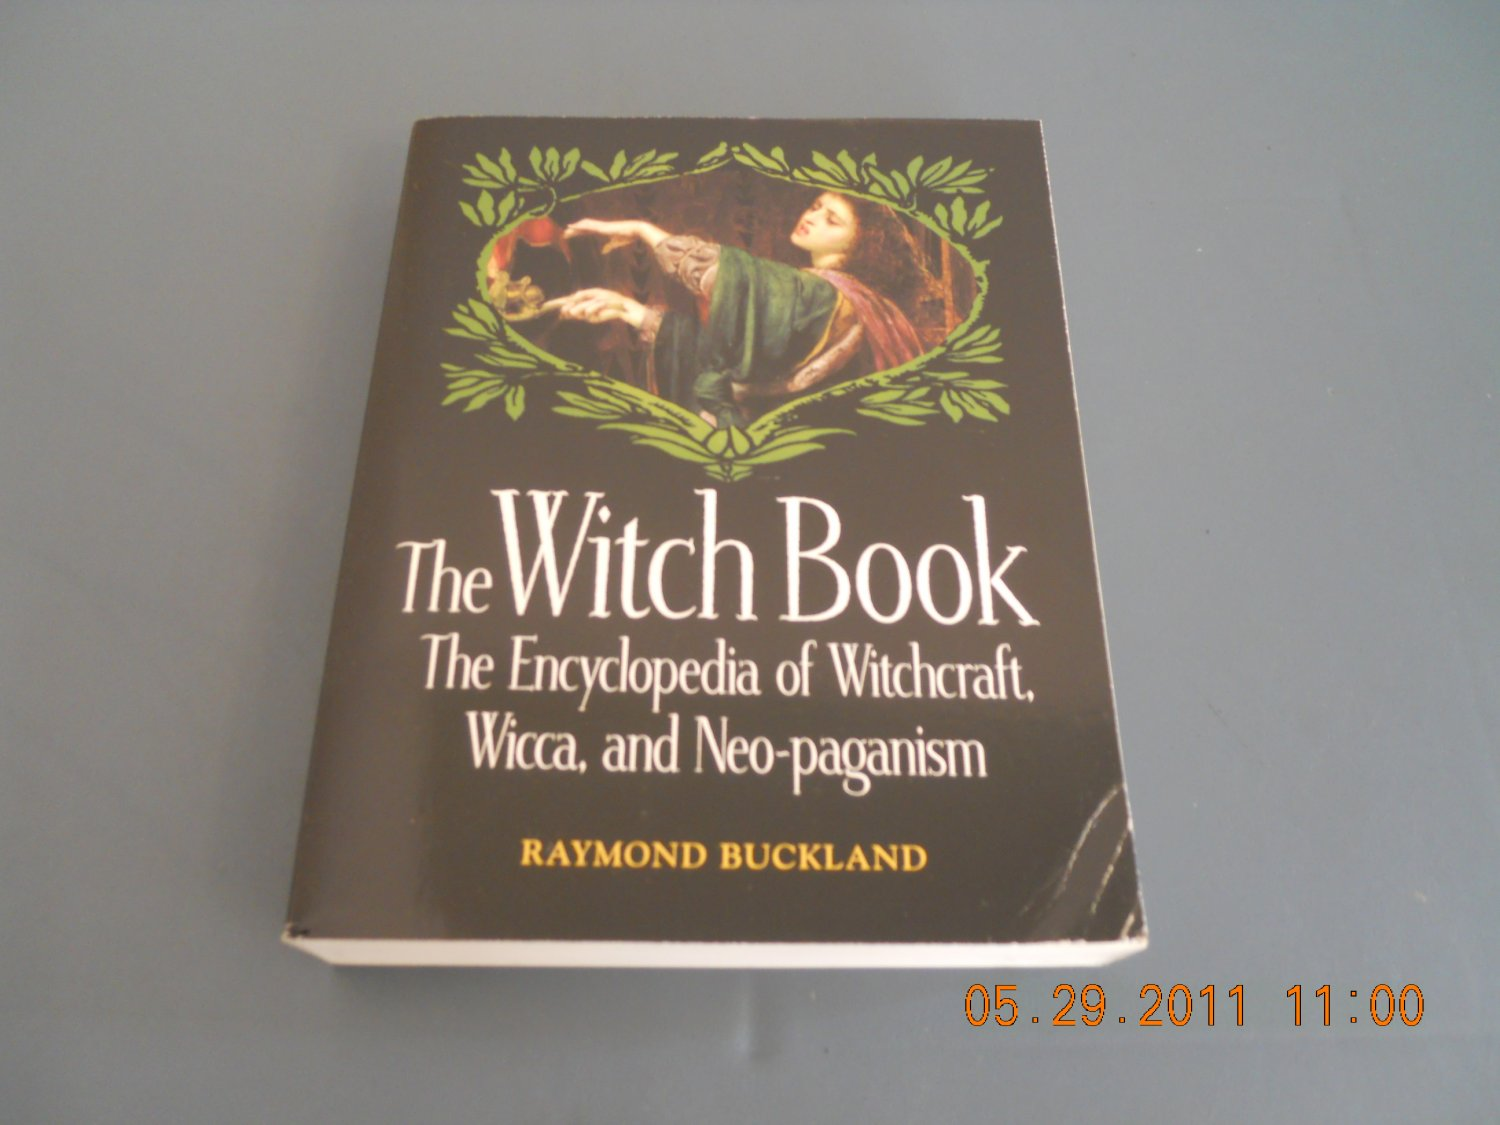 The Witch Book The Encyclopedia of Witchcraft, Wicca, and Neo-Paganism paperback